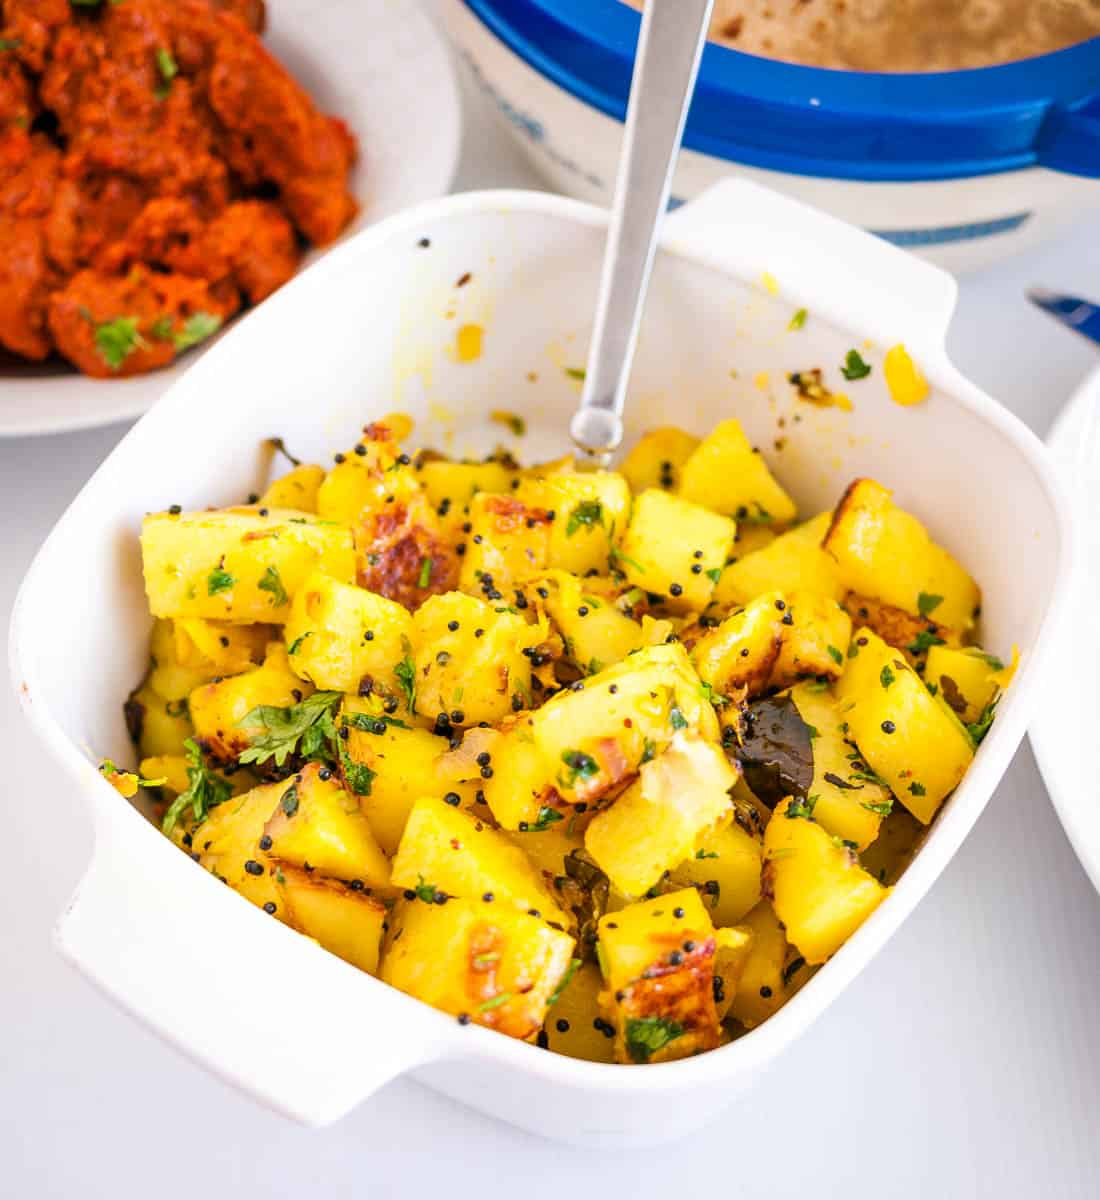 A dish with Indian potatoes spiced.